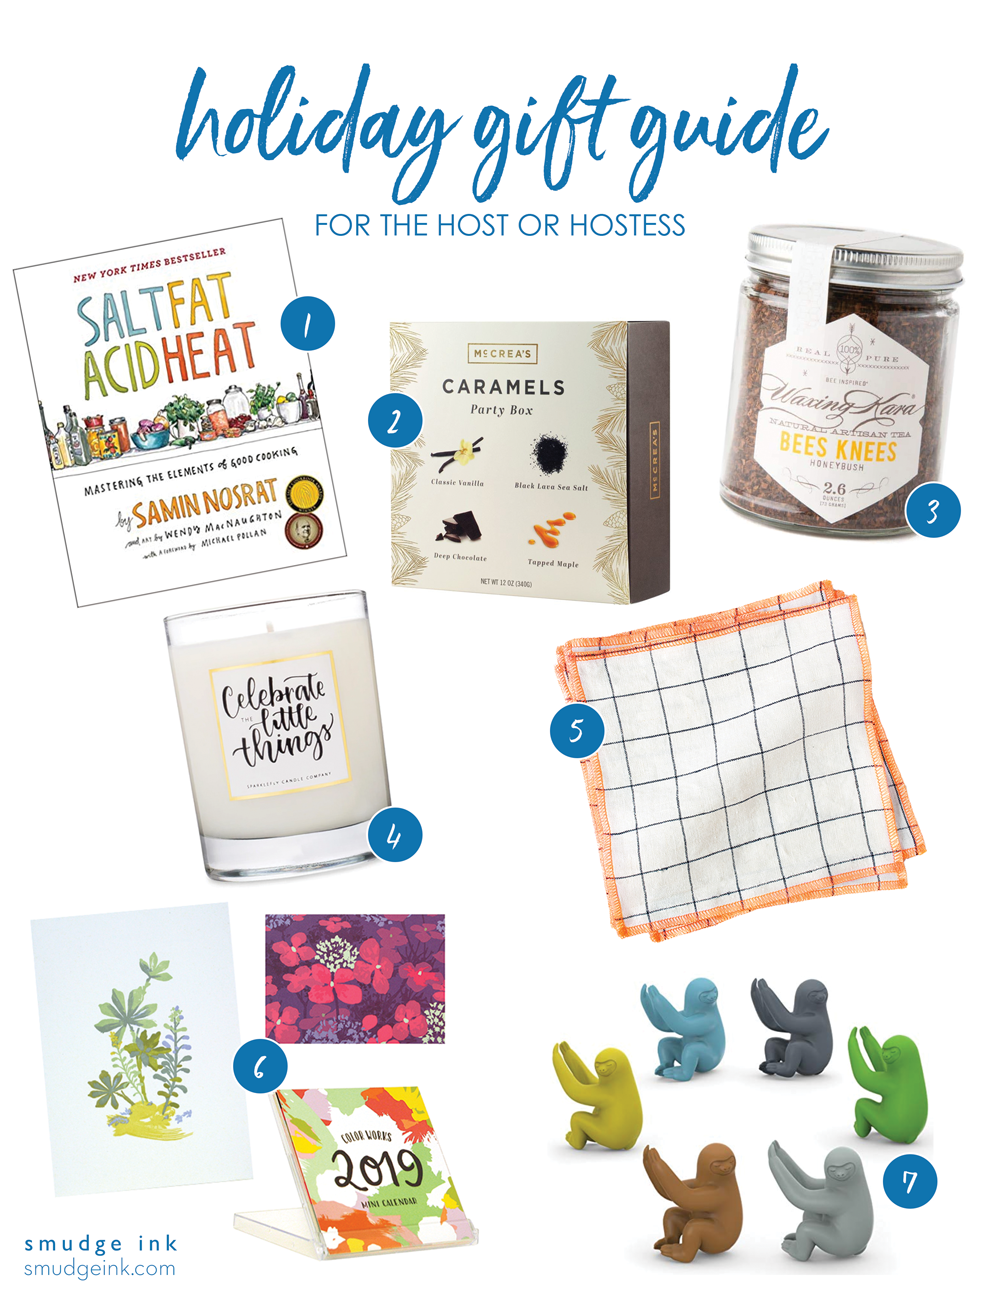 2018 Holiday Gift Guide for the Host or Hostess by Smudge Ink